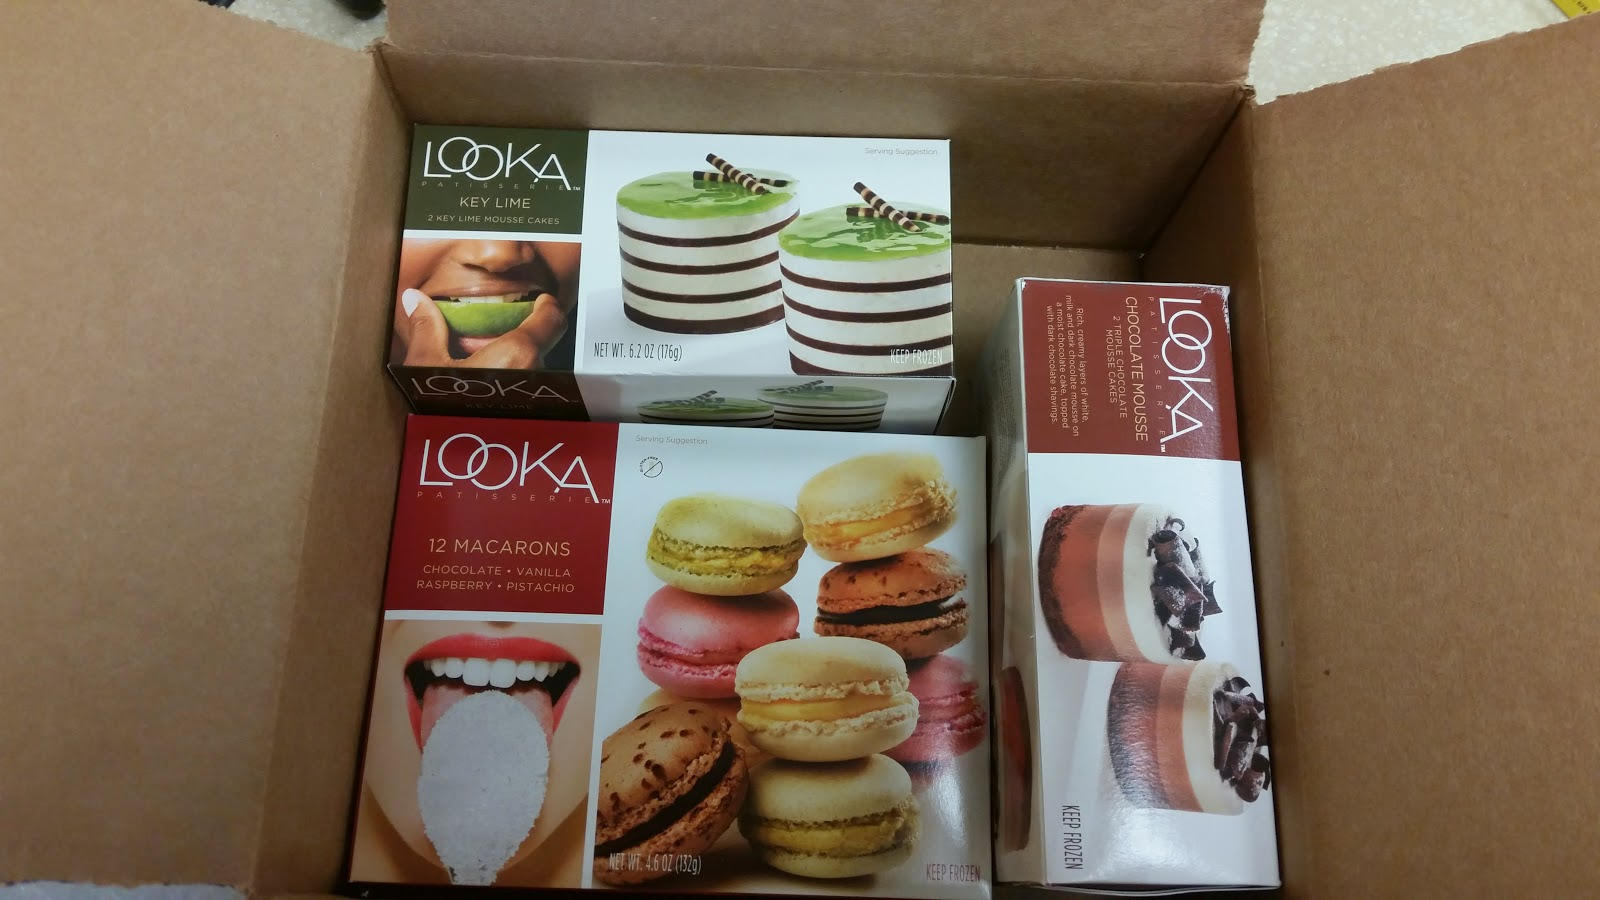 LOOKA Patisserie French Desserts Review and Giveaway Ends 7/14 via ProductReviewMom.com #frenchdesserts